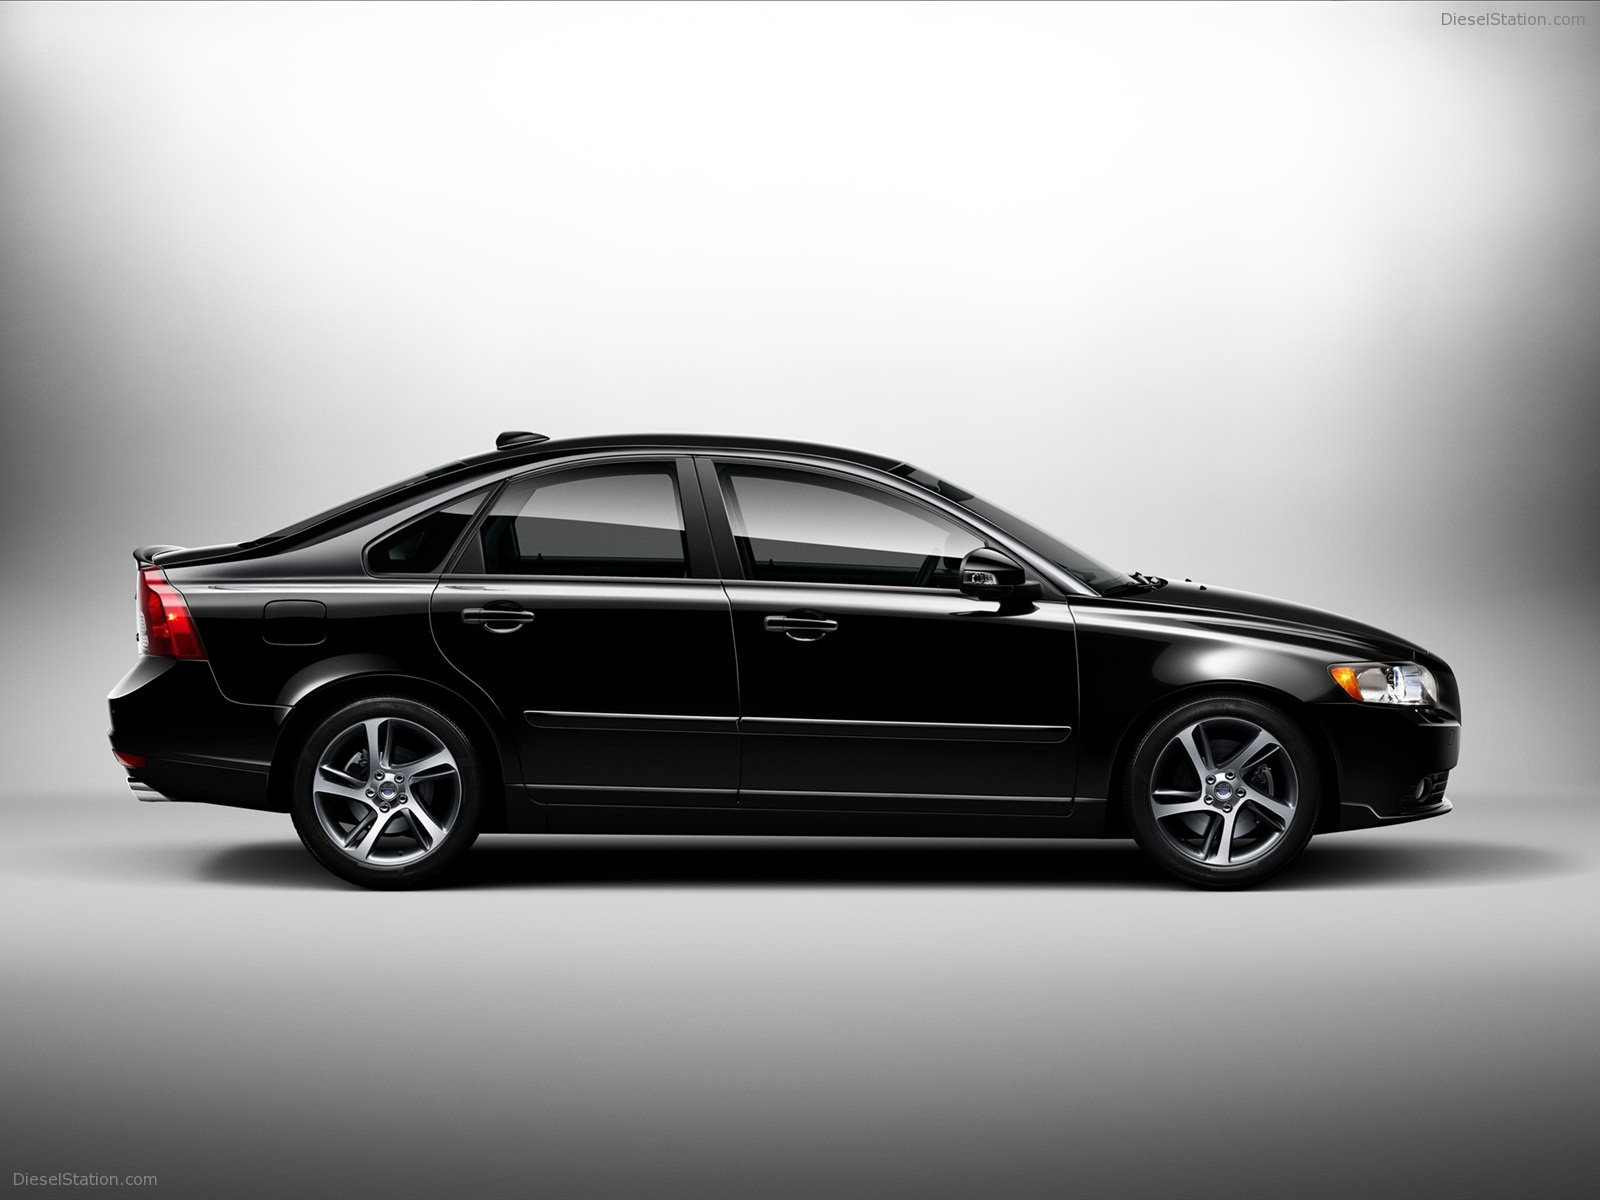 Volvo S40 2012 Exotic Car Wallpapers 02 of 46 Diesel Station 1600x1200